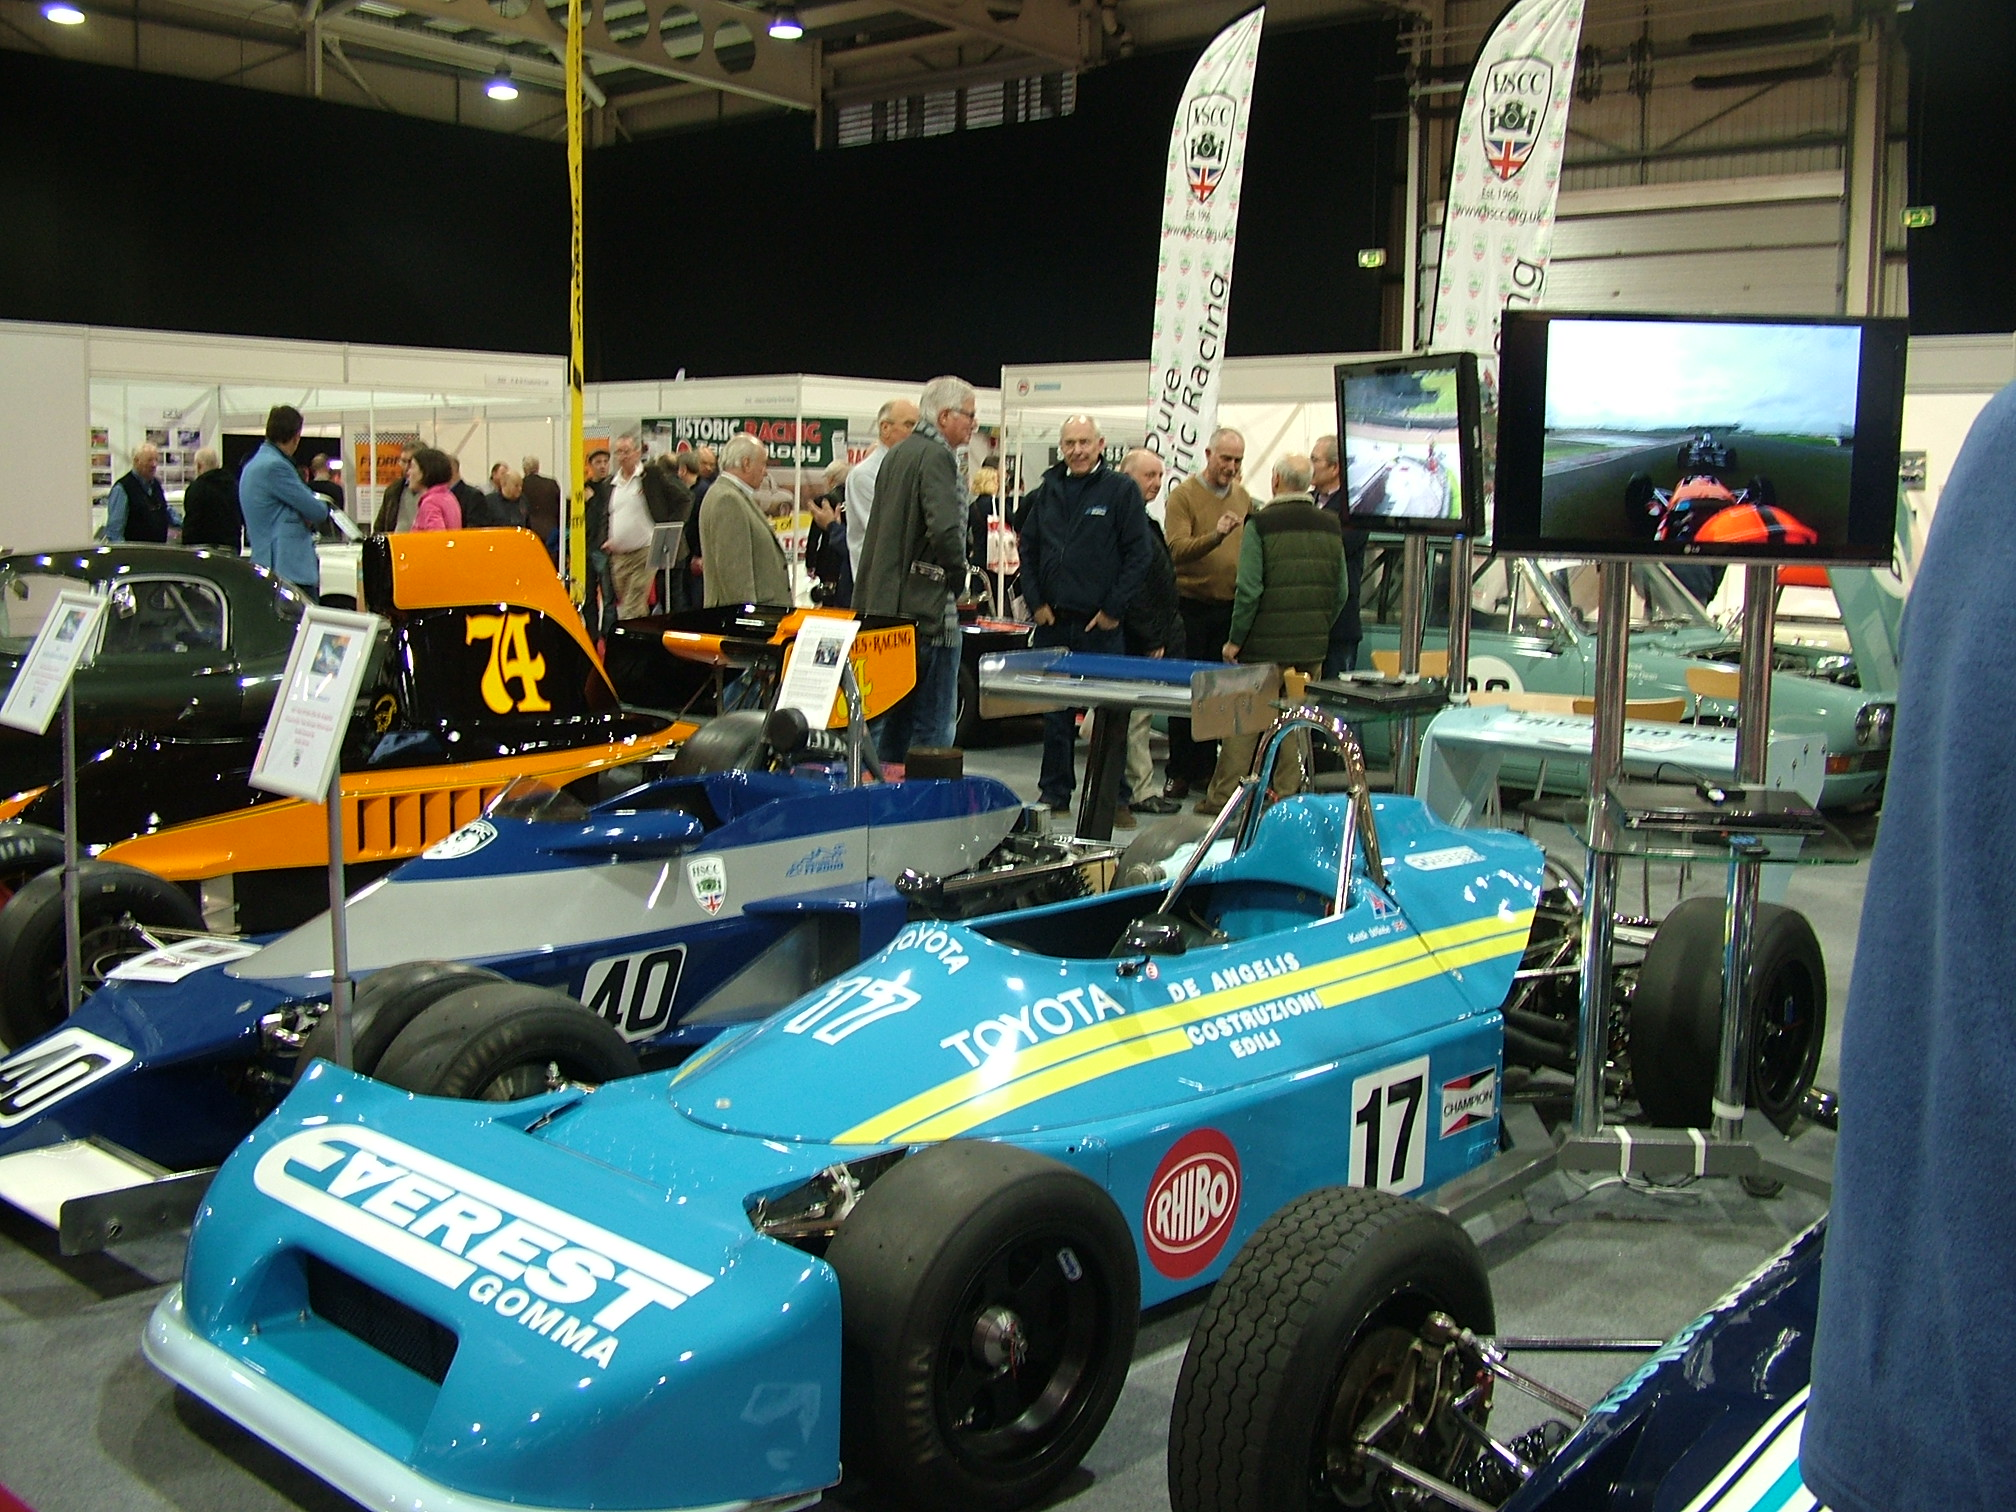 HISTORIC MOTORSPORT SHOW TO MAKE A ROARING RETURN TO NAEC STONELEIGH